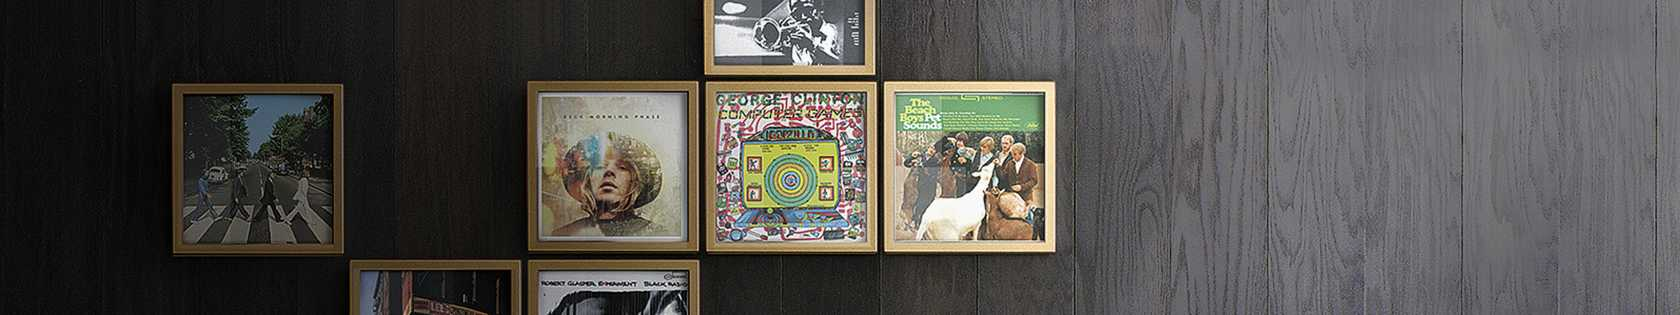 Framed albums on a wall